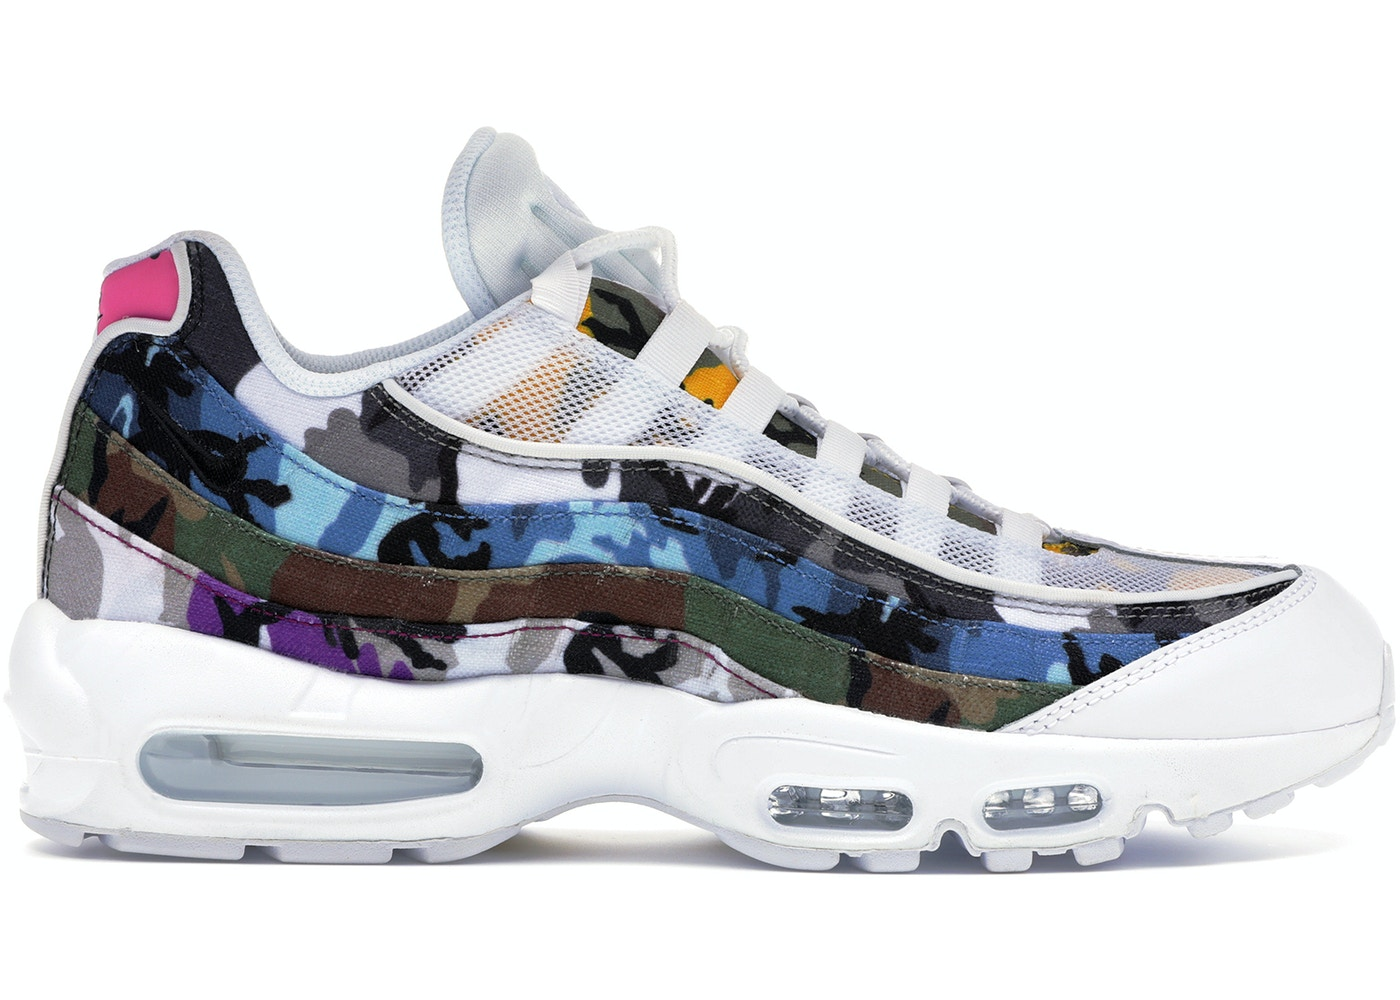 official photos 58e08 a02a6 Buy Nike Air Max 95 Shoes  Deadstock Sneakers